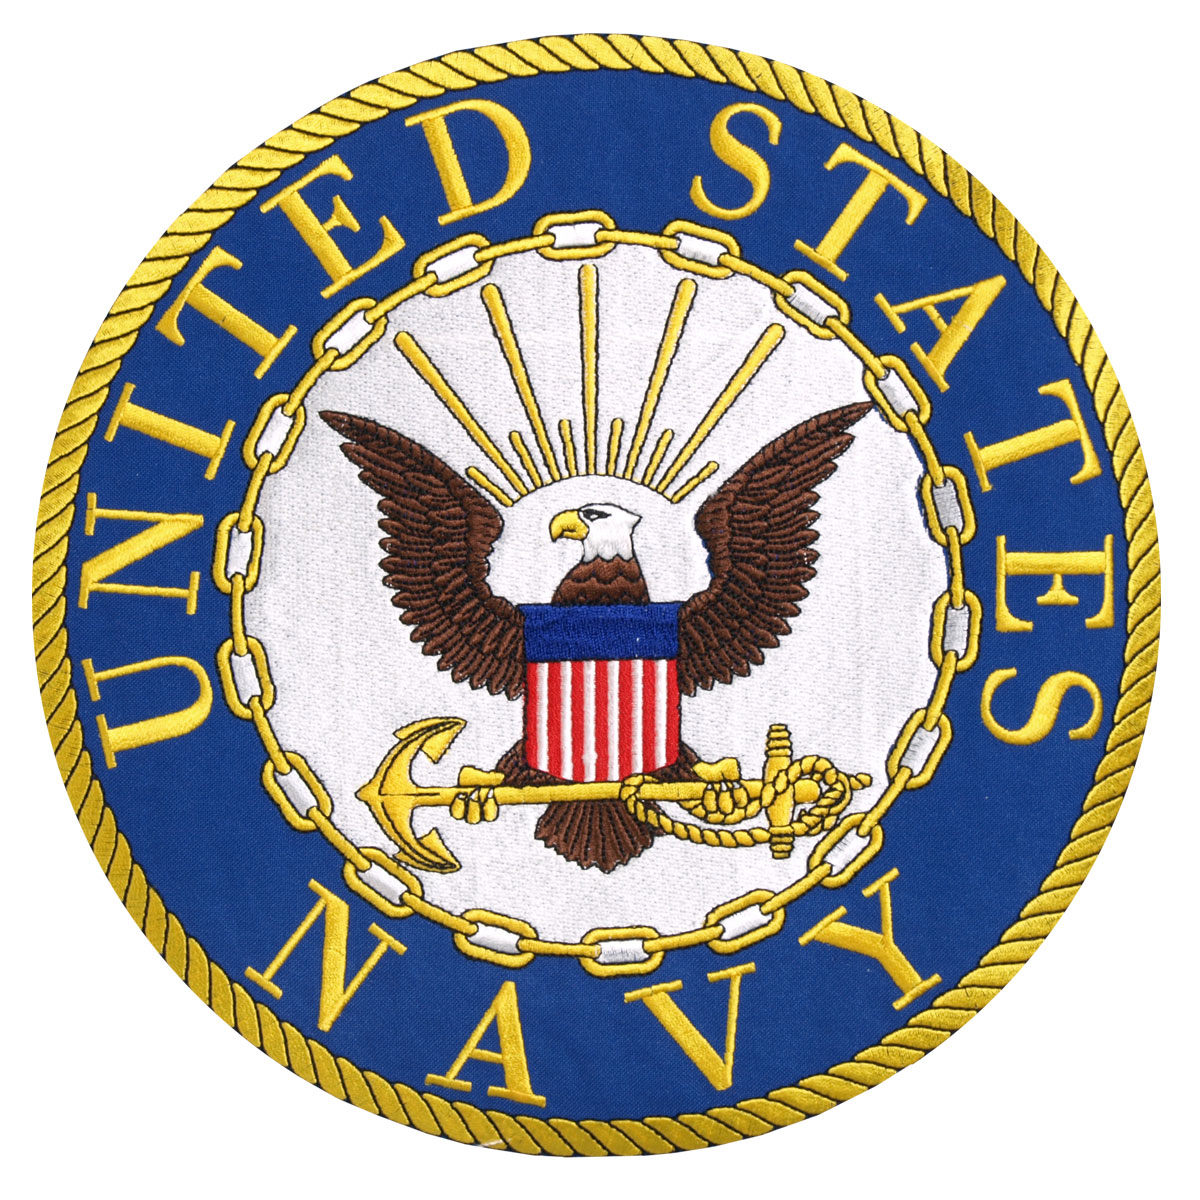 Free download Military Logo Navy Hot leathers us navy logo.